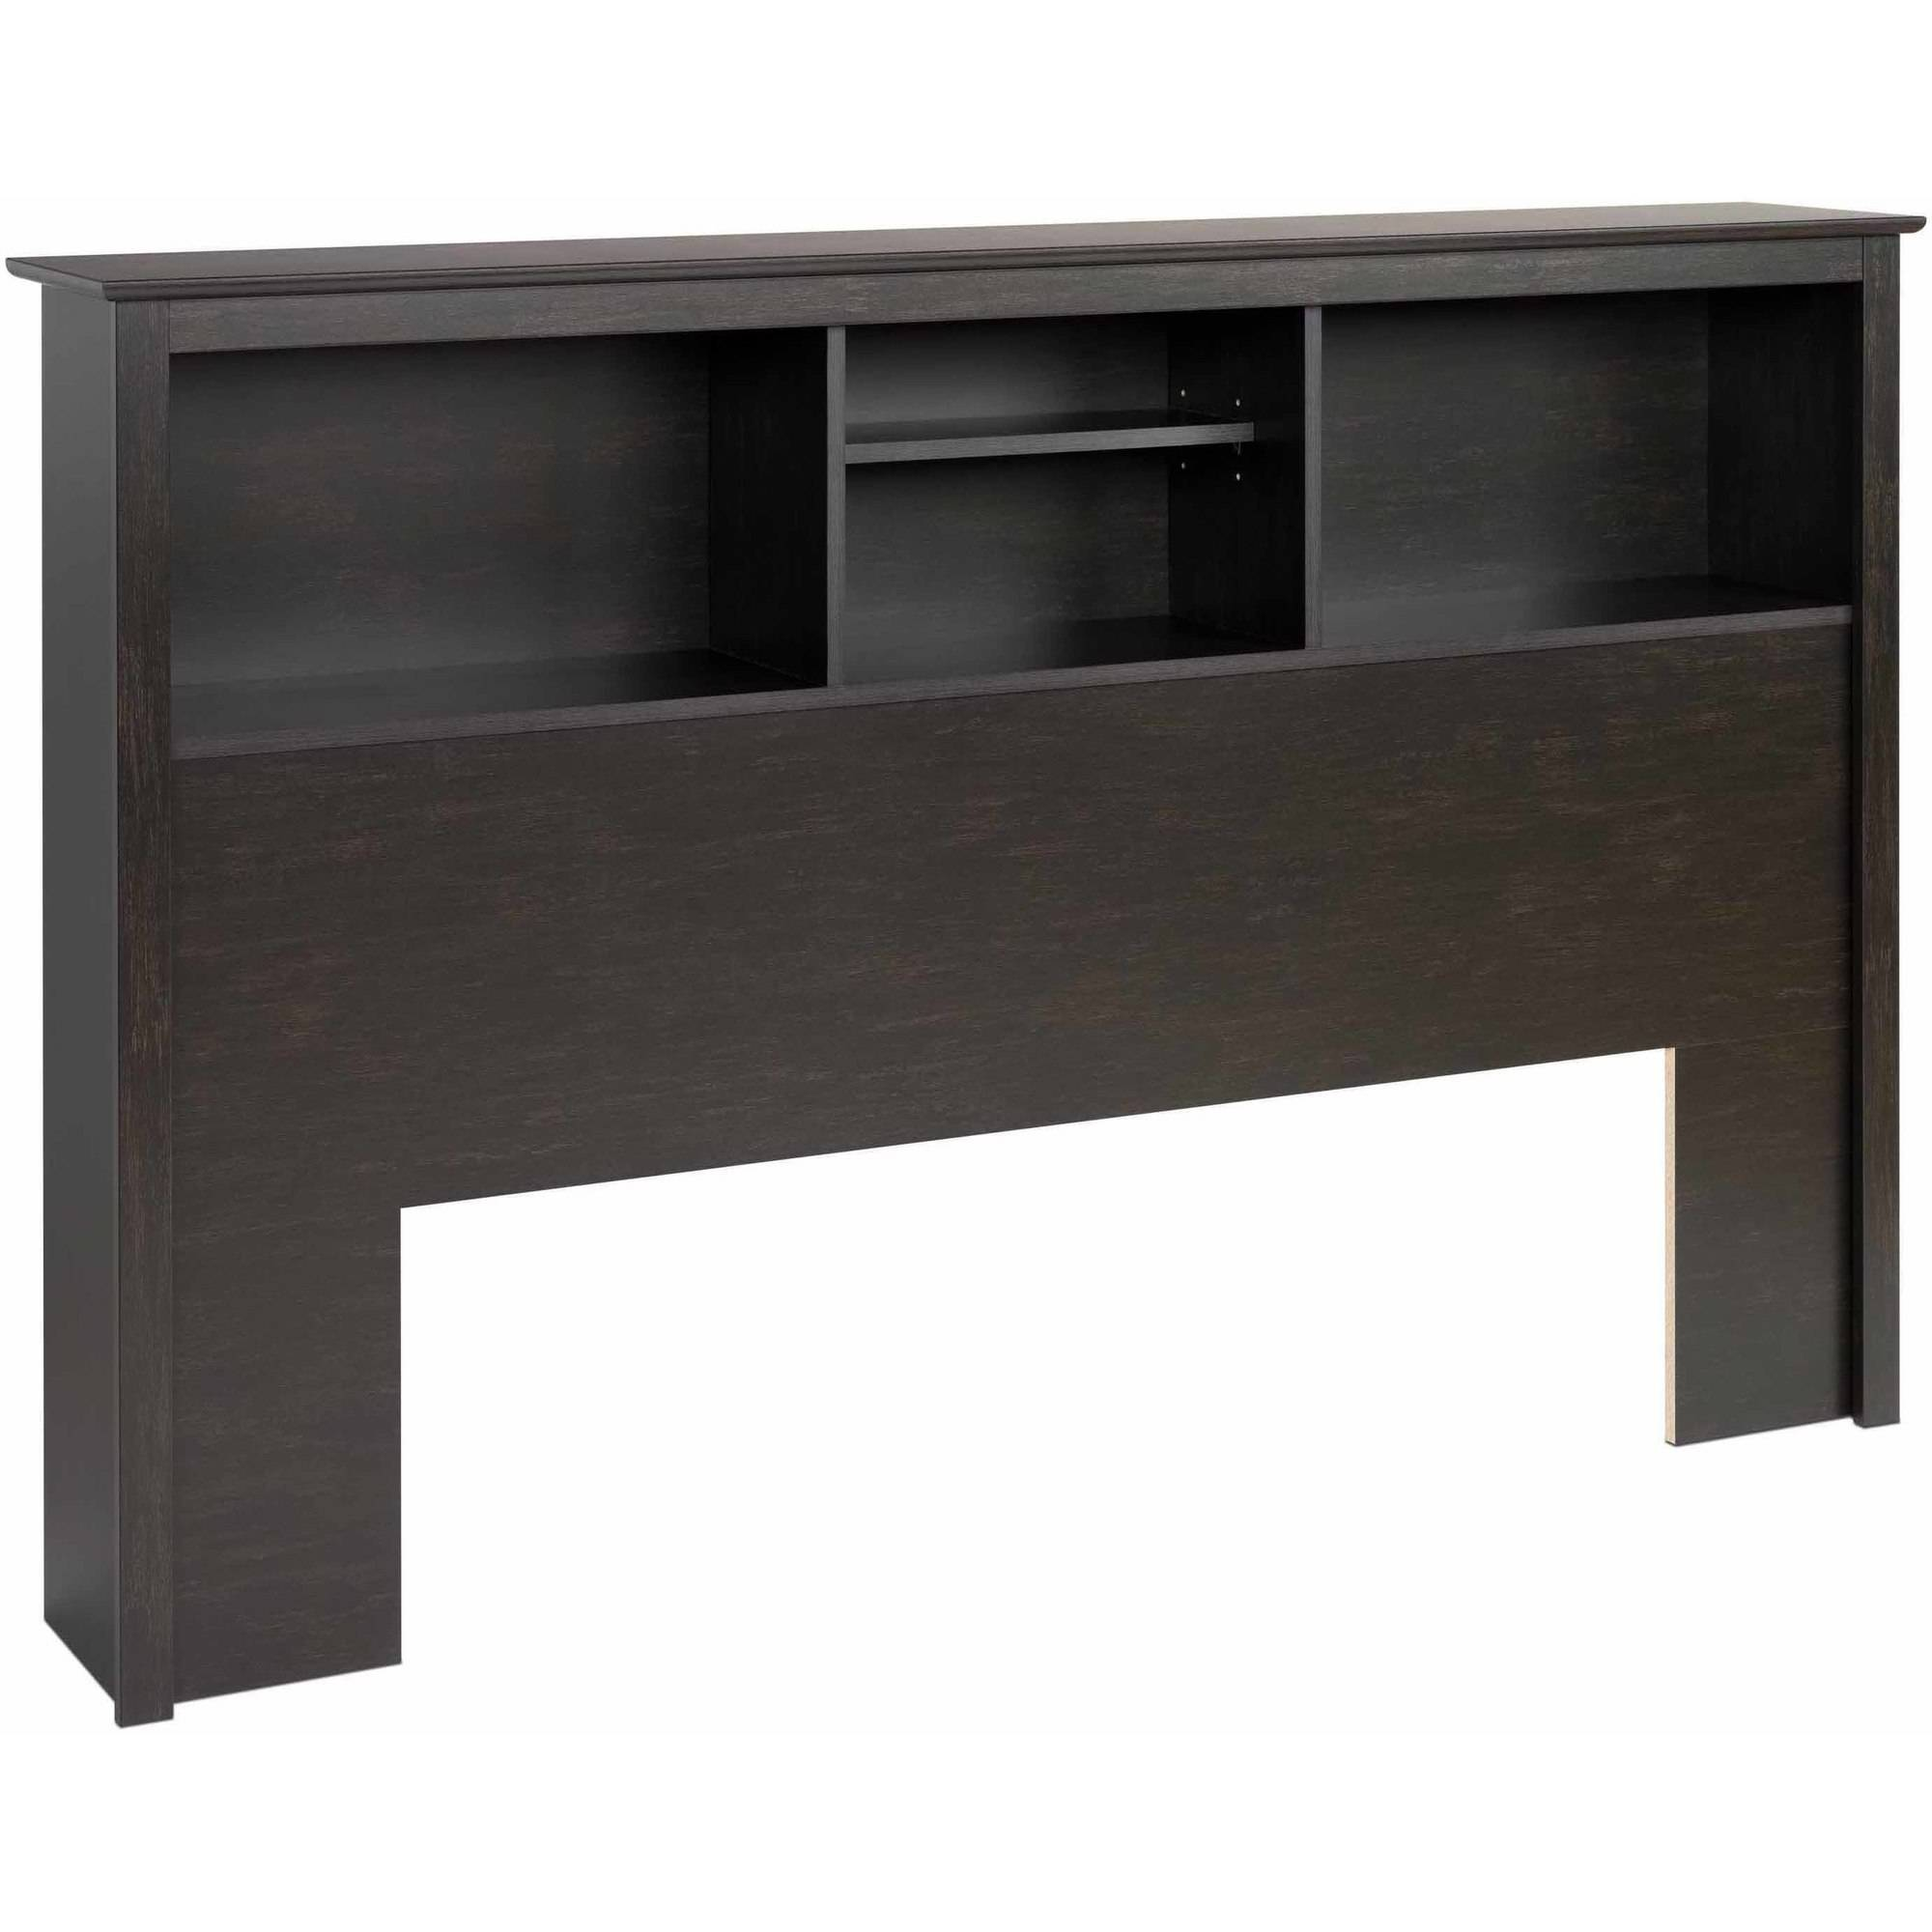 Sonoma Double/Queen Bookcase Headboard, Multiple Finishes